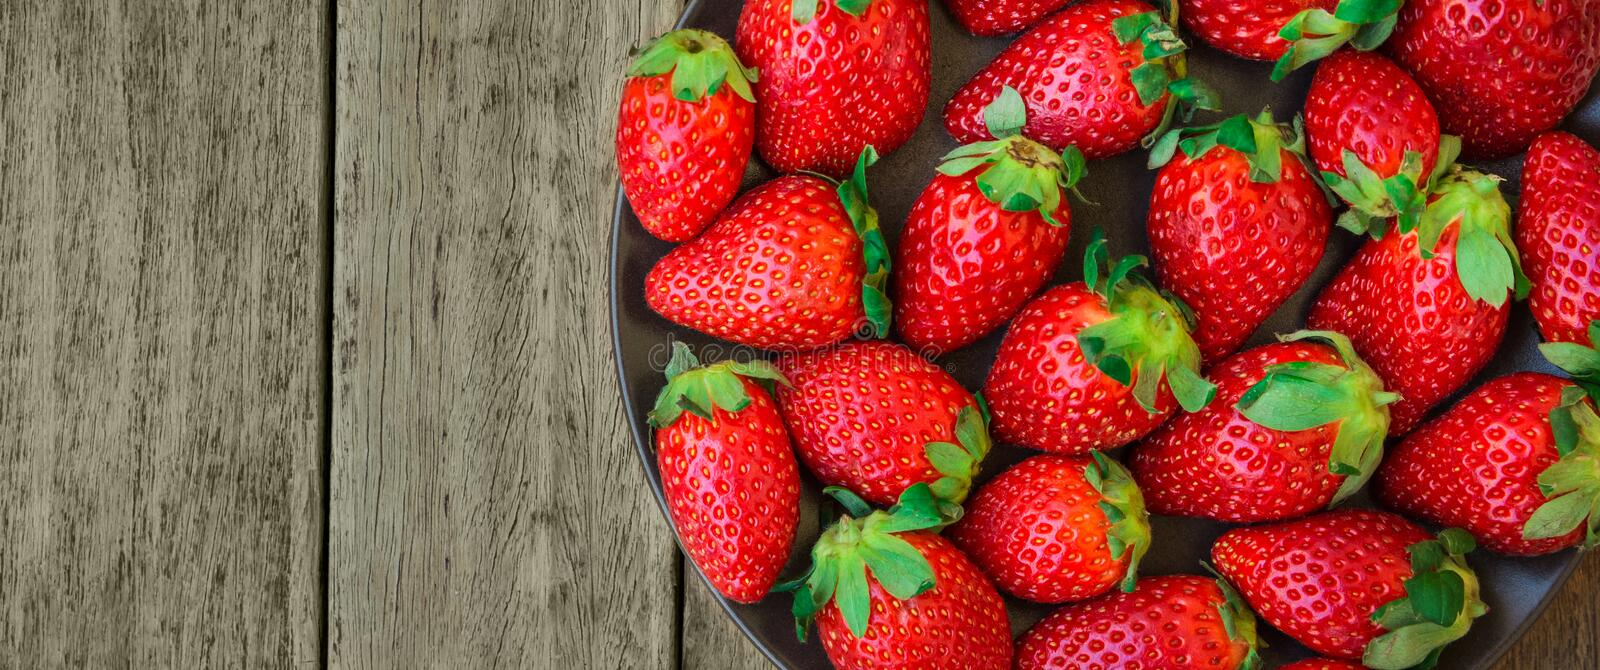 Ripe organic strawberries on aged plank wood background. Summer fruits and berries local produce vitamins plant based diet concept. Long banner with copy space royalty free stock photo